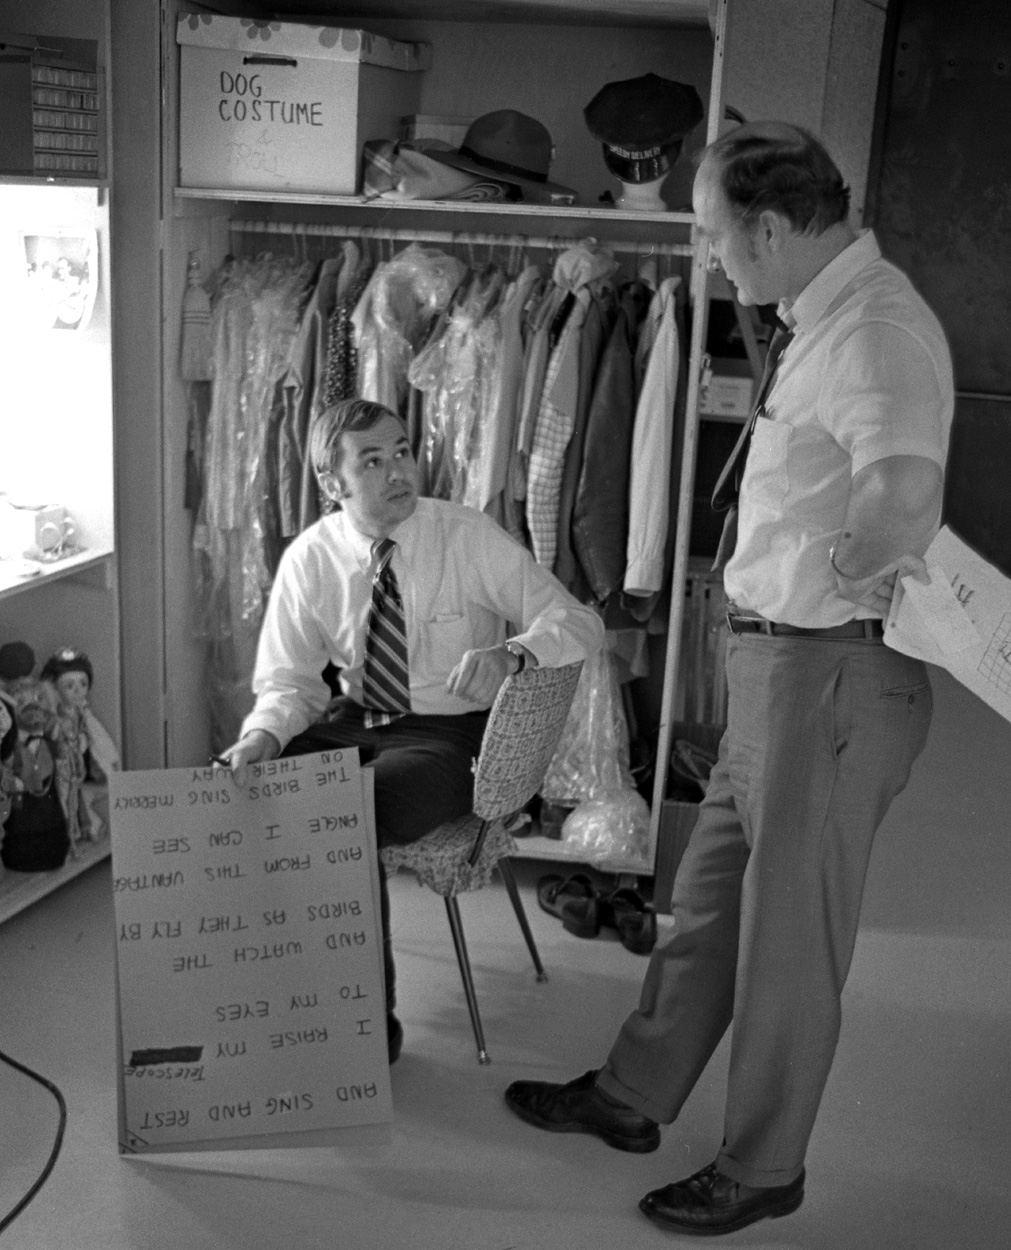 Props manager David Newell (left) and set designer Jack Guest discuss production details.